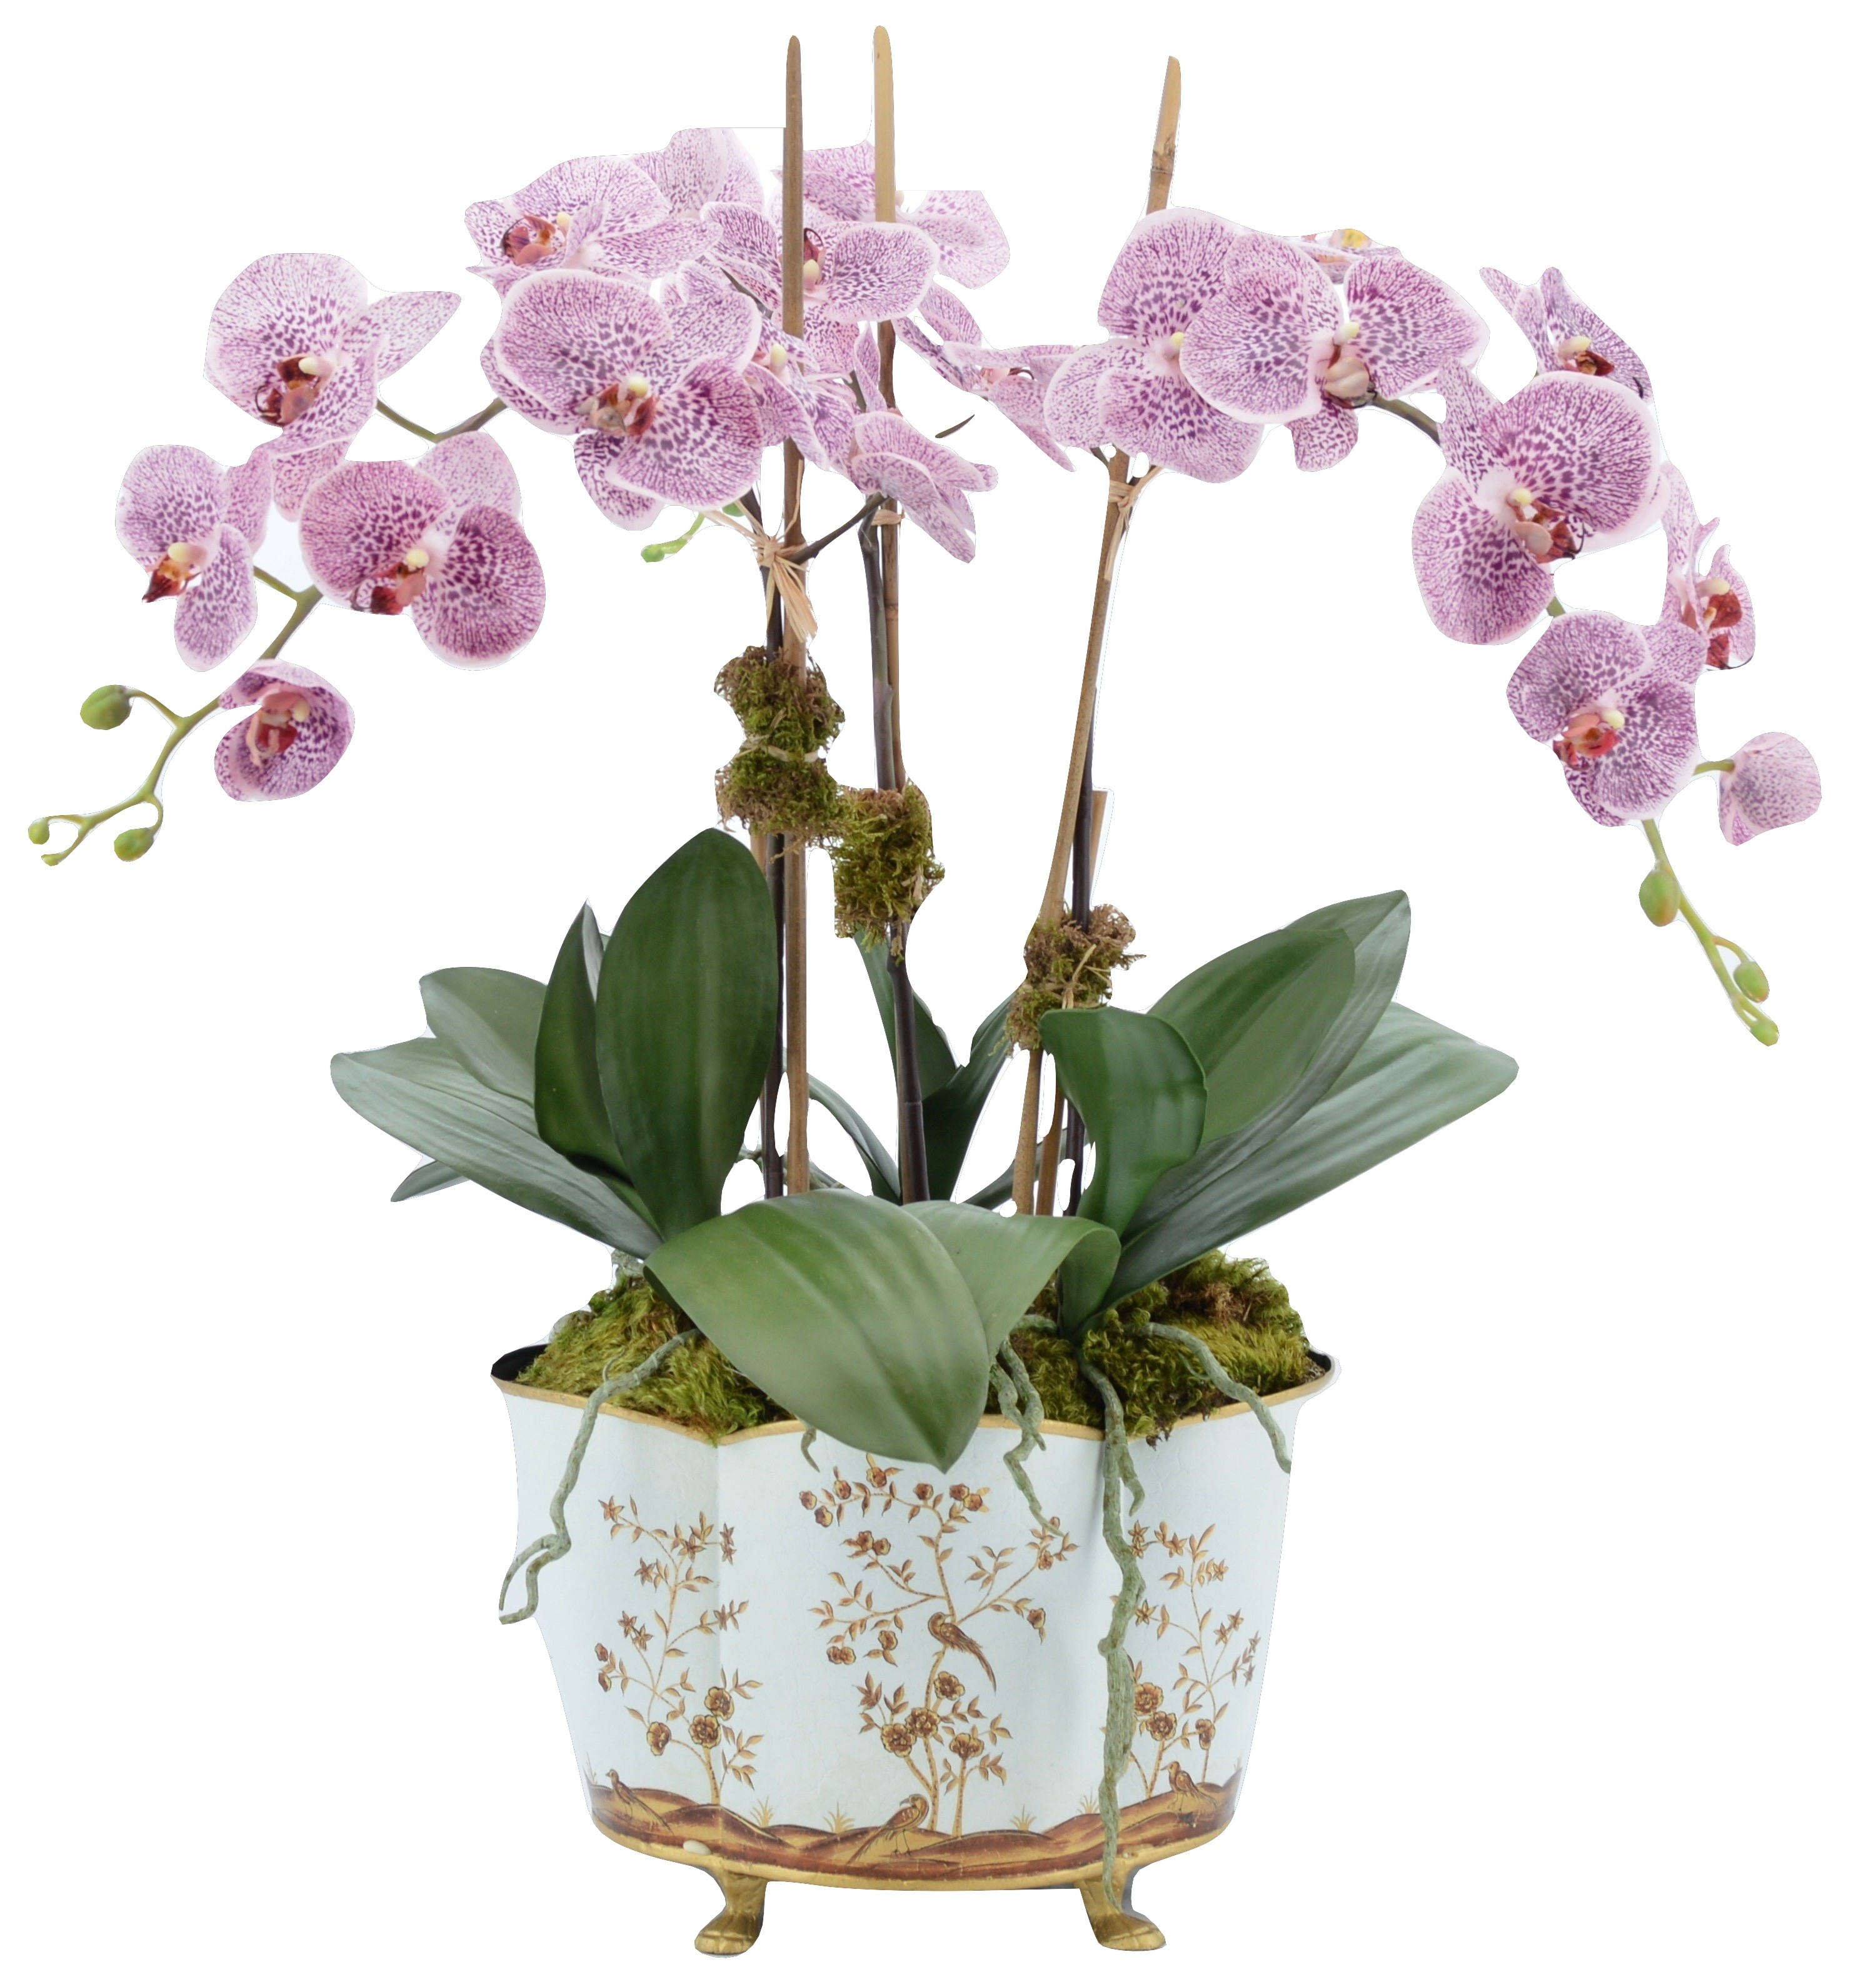 Incredible large pink orchid plant